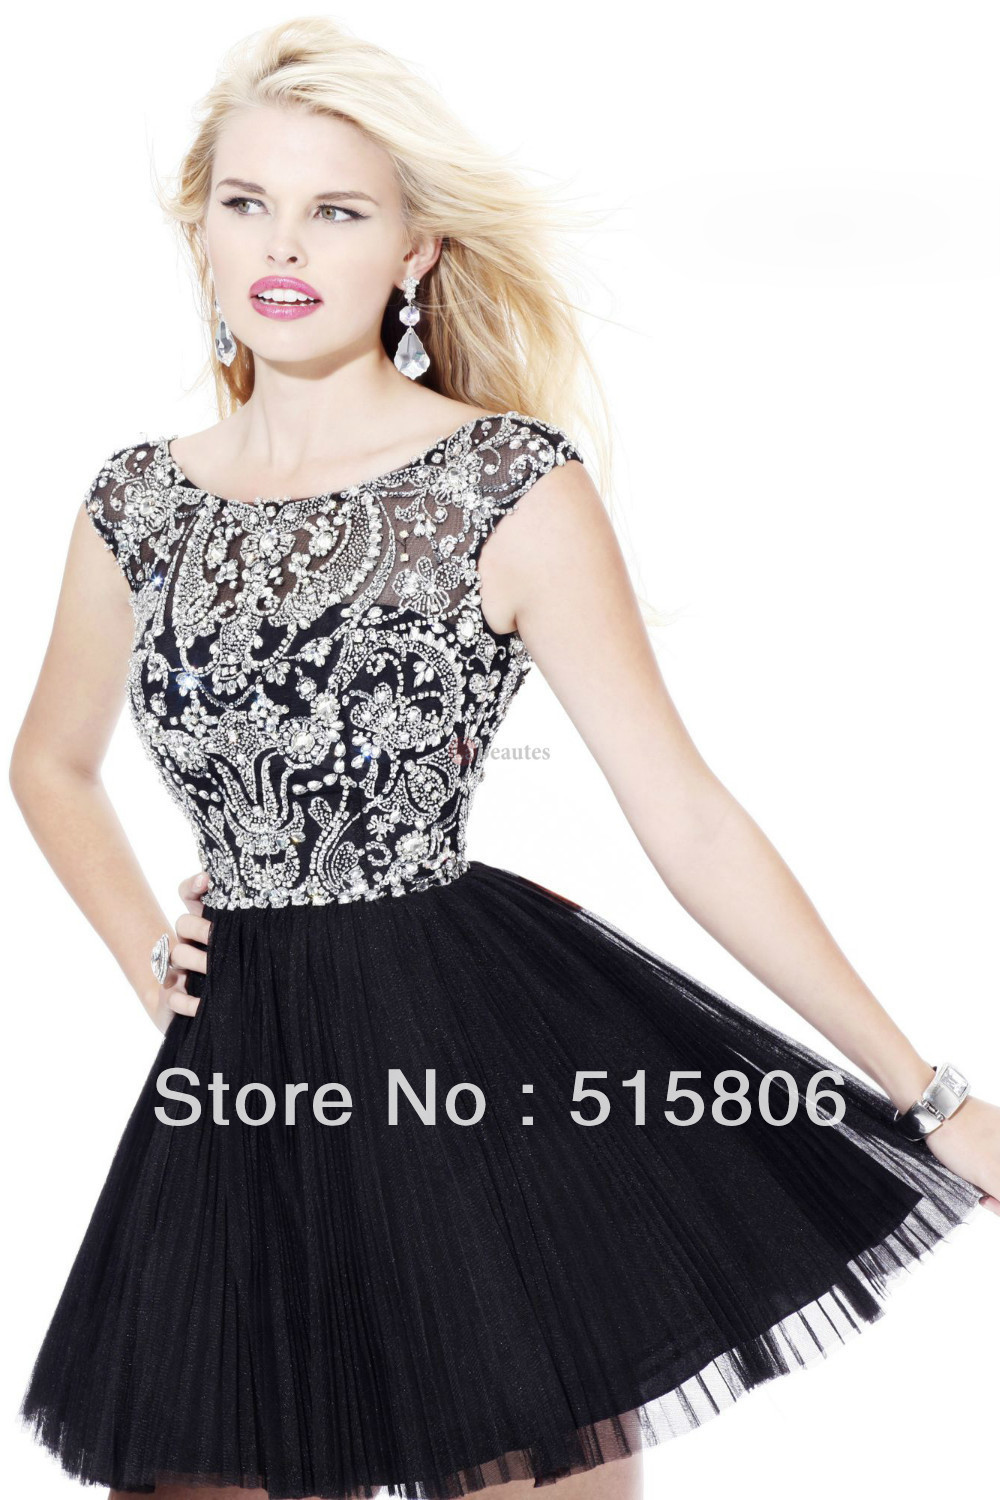 Plus Size Prom Dresses Under 100 Dollars - Gowns and Dress Ideas